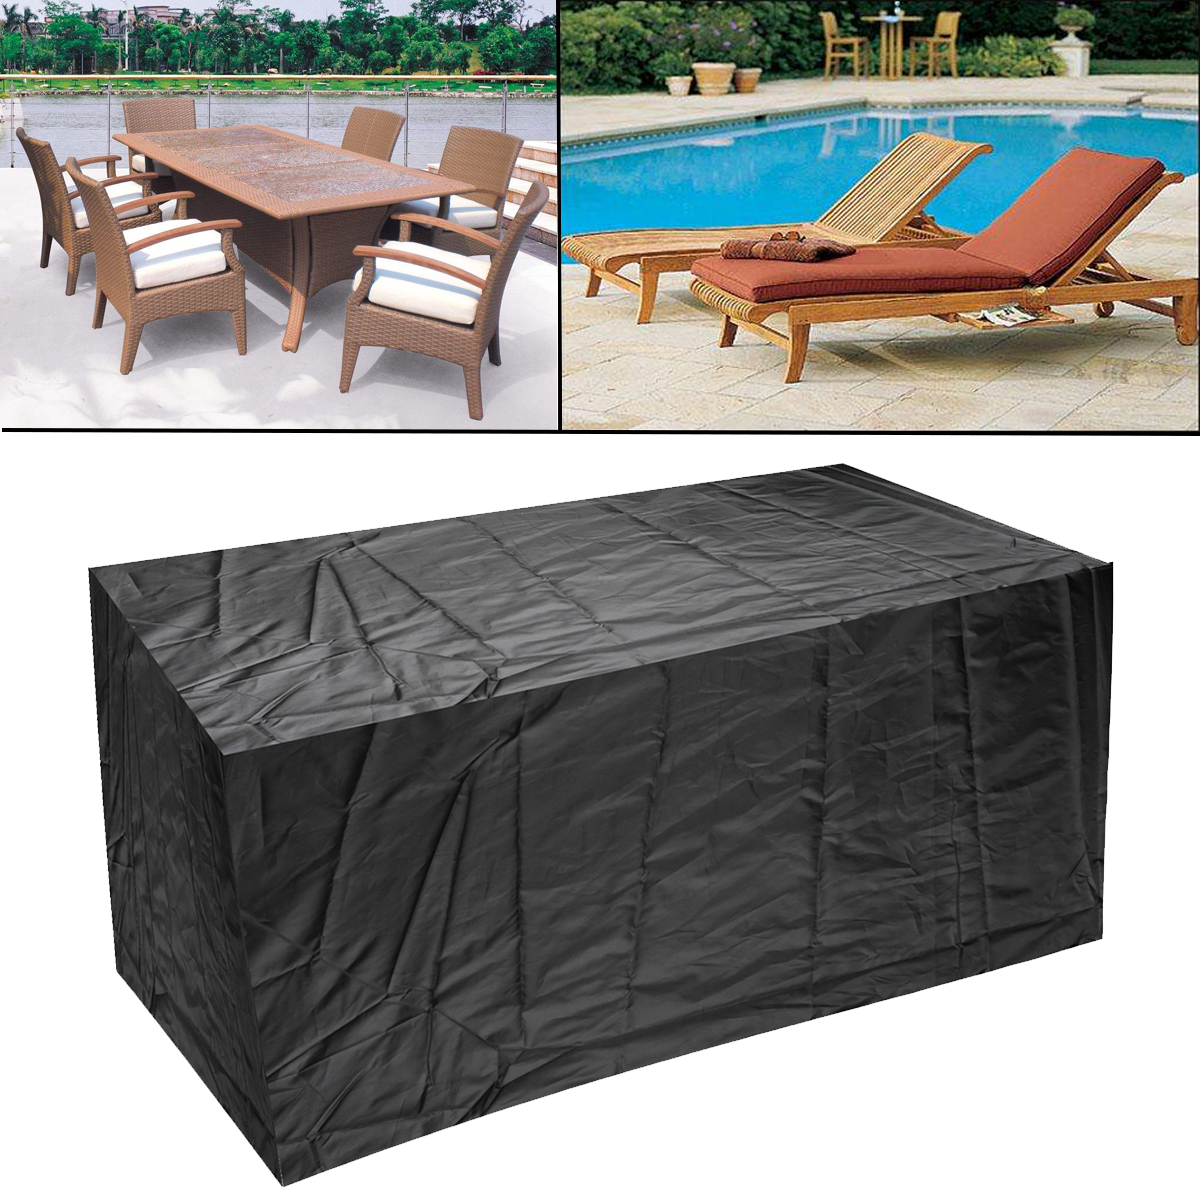 4 Size Beach Outdoor Waterproof Garden Furniture Cover Protector Table Set  Chair Sofa Covers Tighten Patio Anti Dust Protection-in All-Purpose Covers  from ... - 4 Size Beach Outdoor Waterproof Garden Furniture Cover Protector